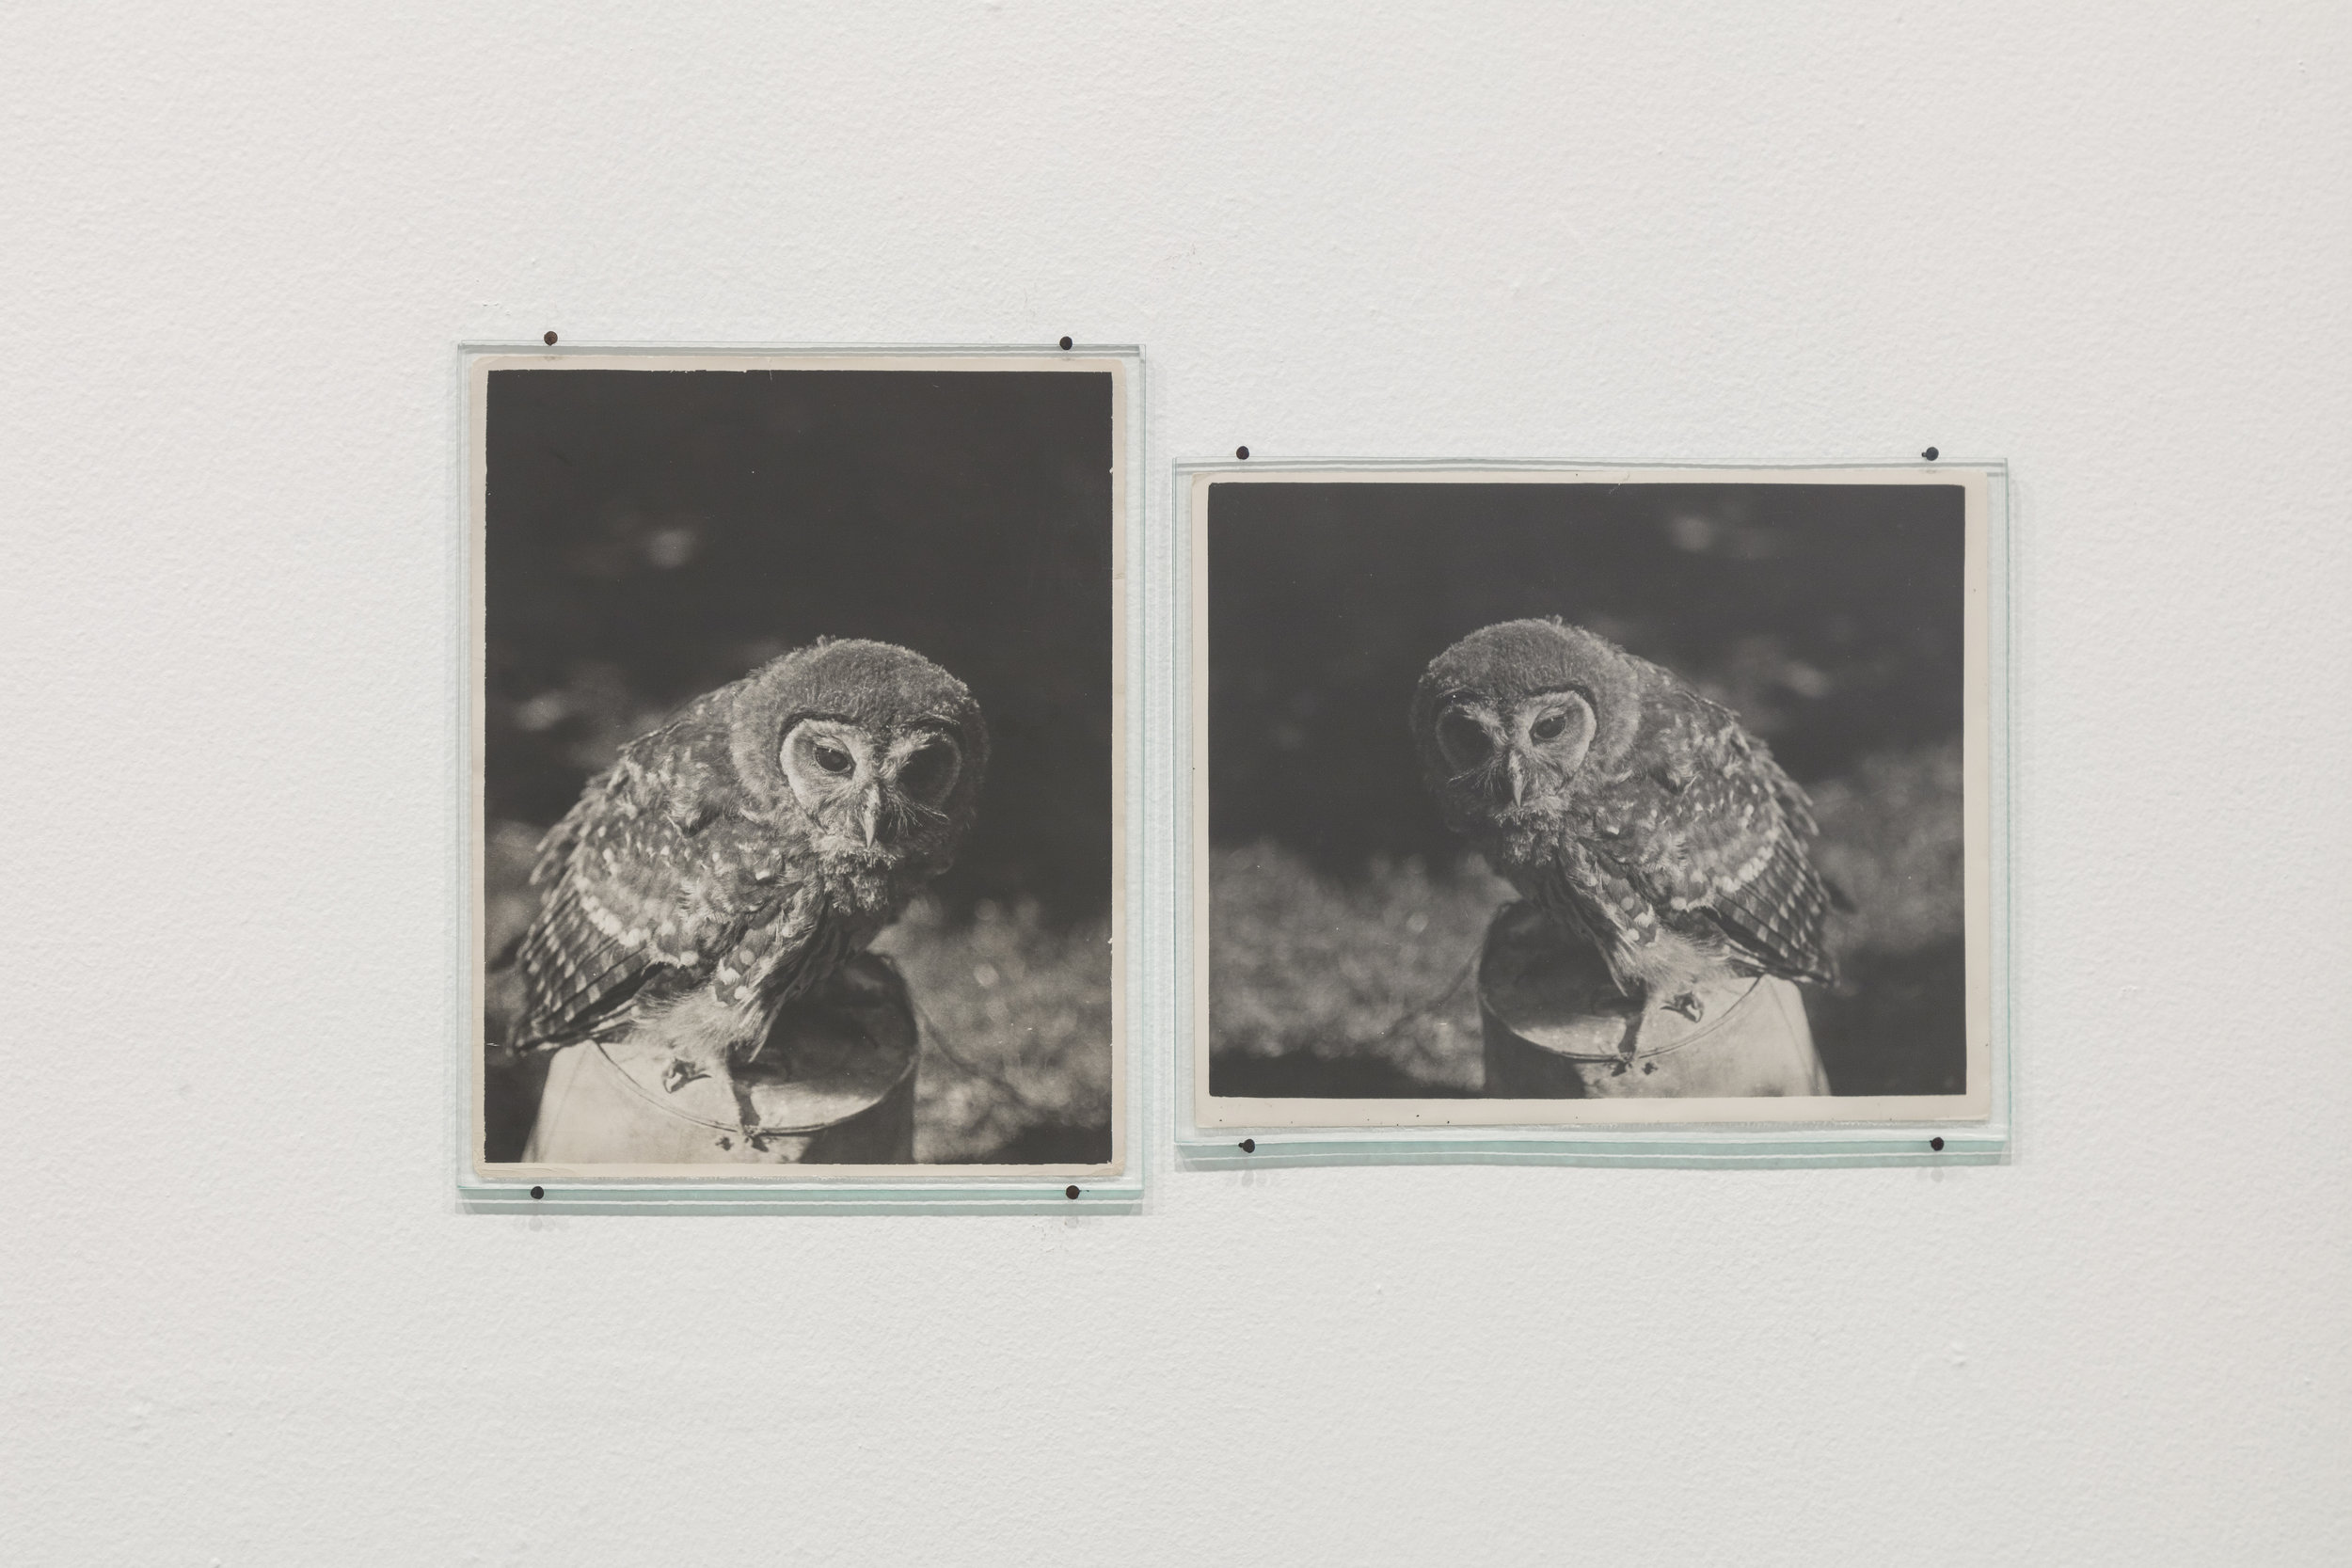 Daniel Gustav Cramer, Owl (1932 / 1938), 2017, 2 found photographs, glass plates, nails, 34x58cm. Courtesy of the artist and Grey Noise